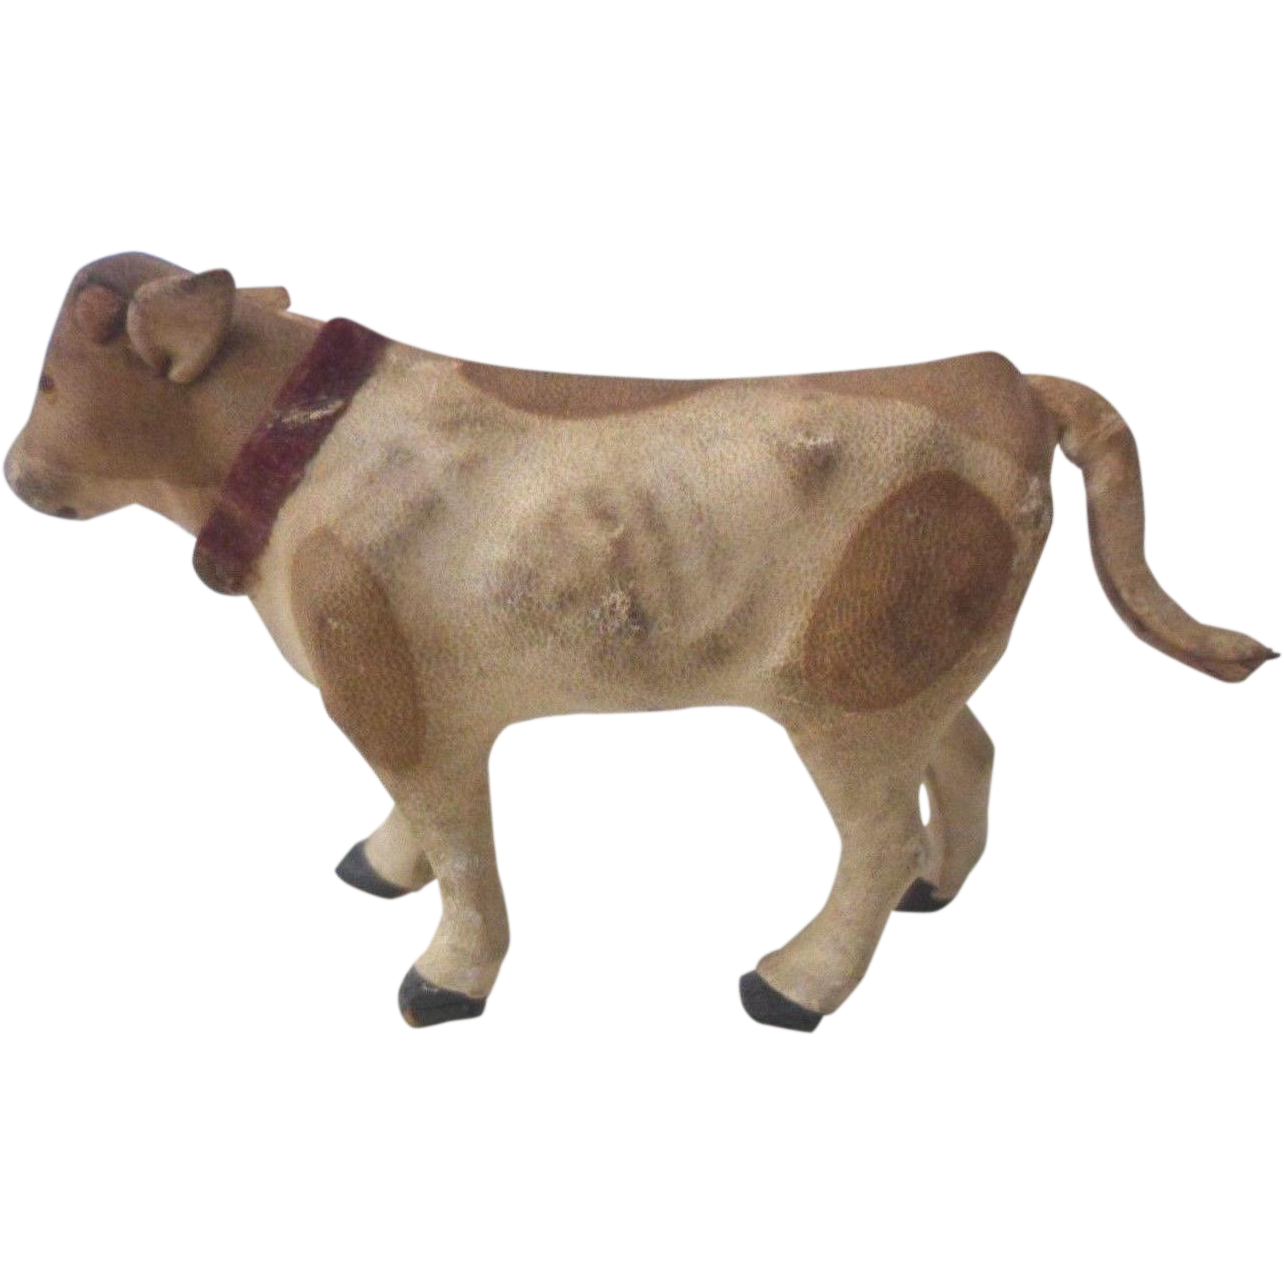 Small Toy Cows : Miniature putz leather covered toy cow from antiquefreak